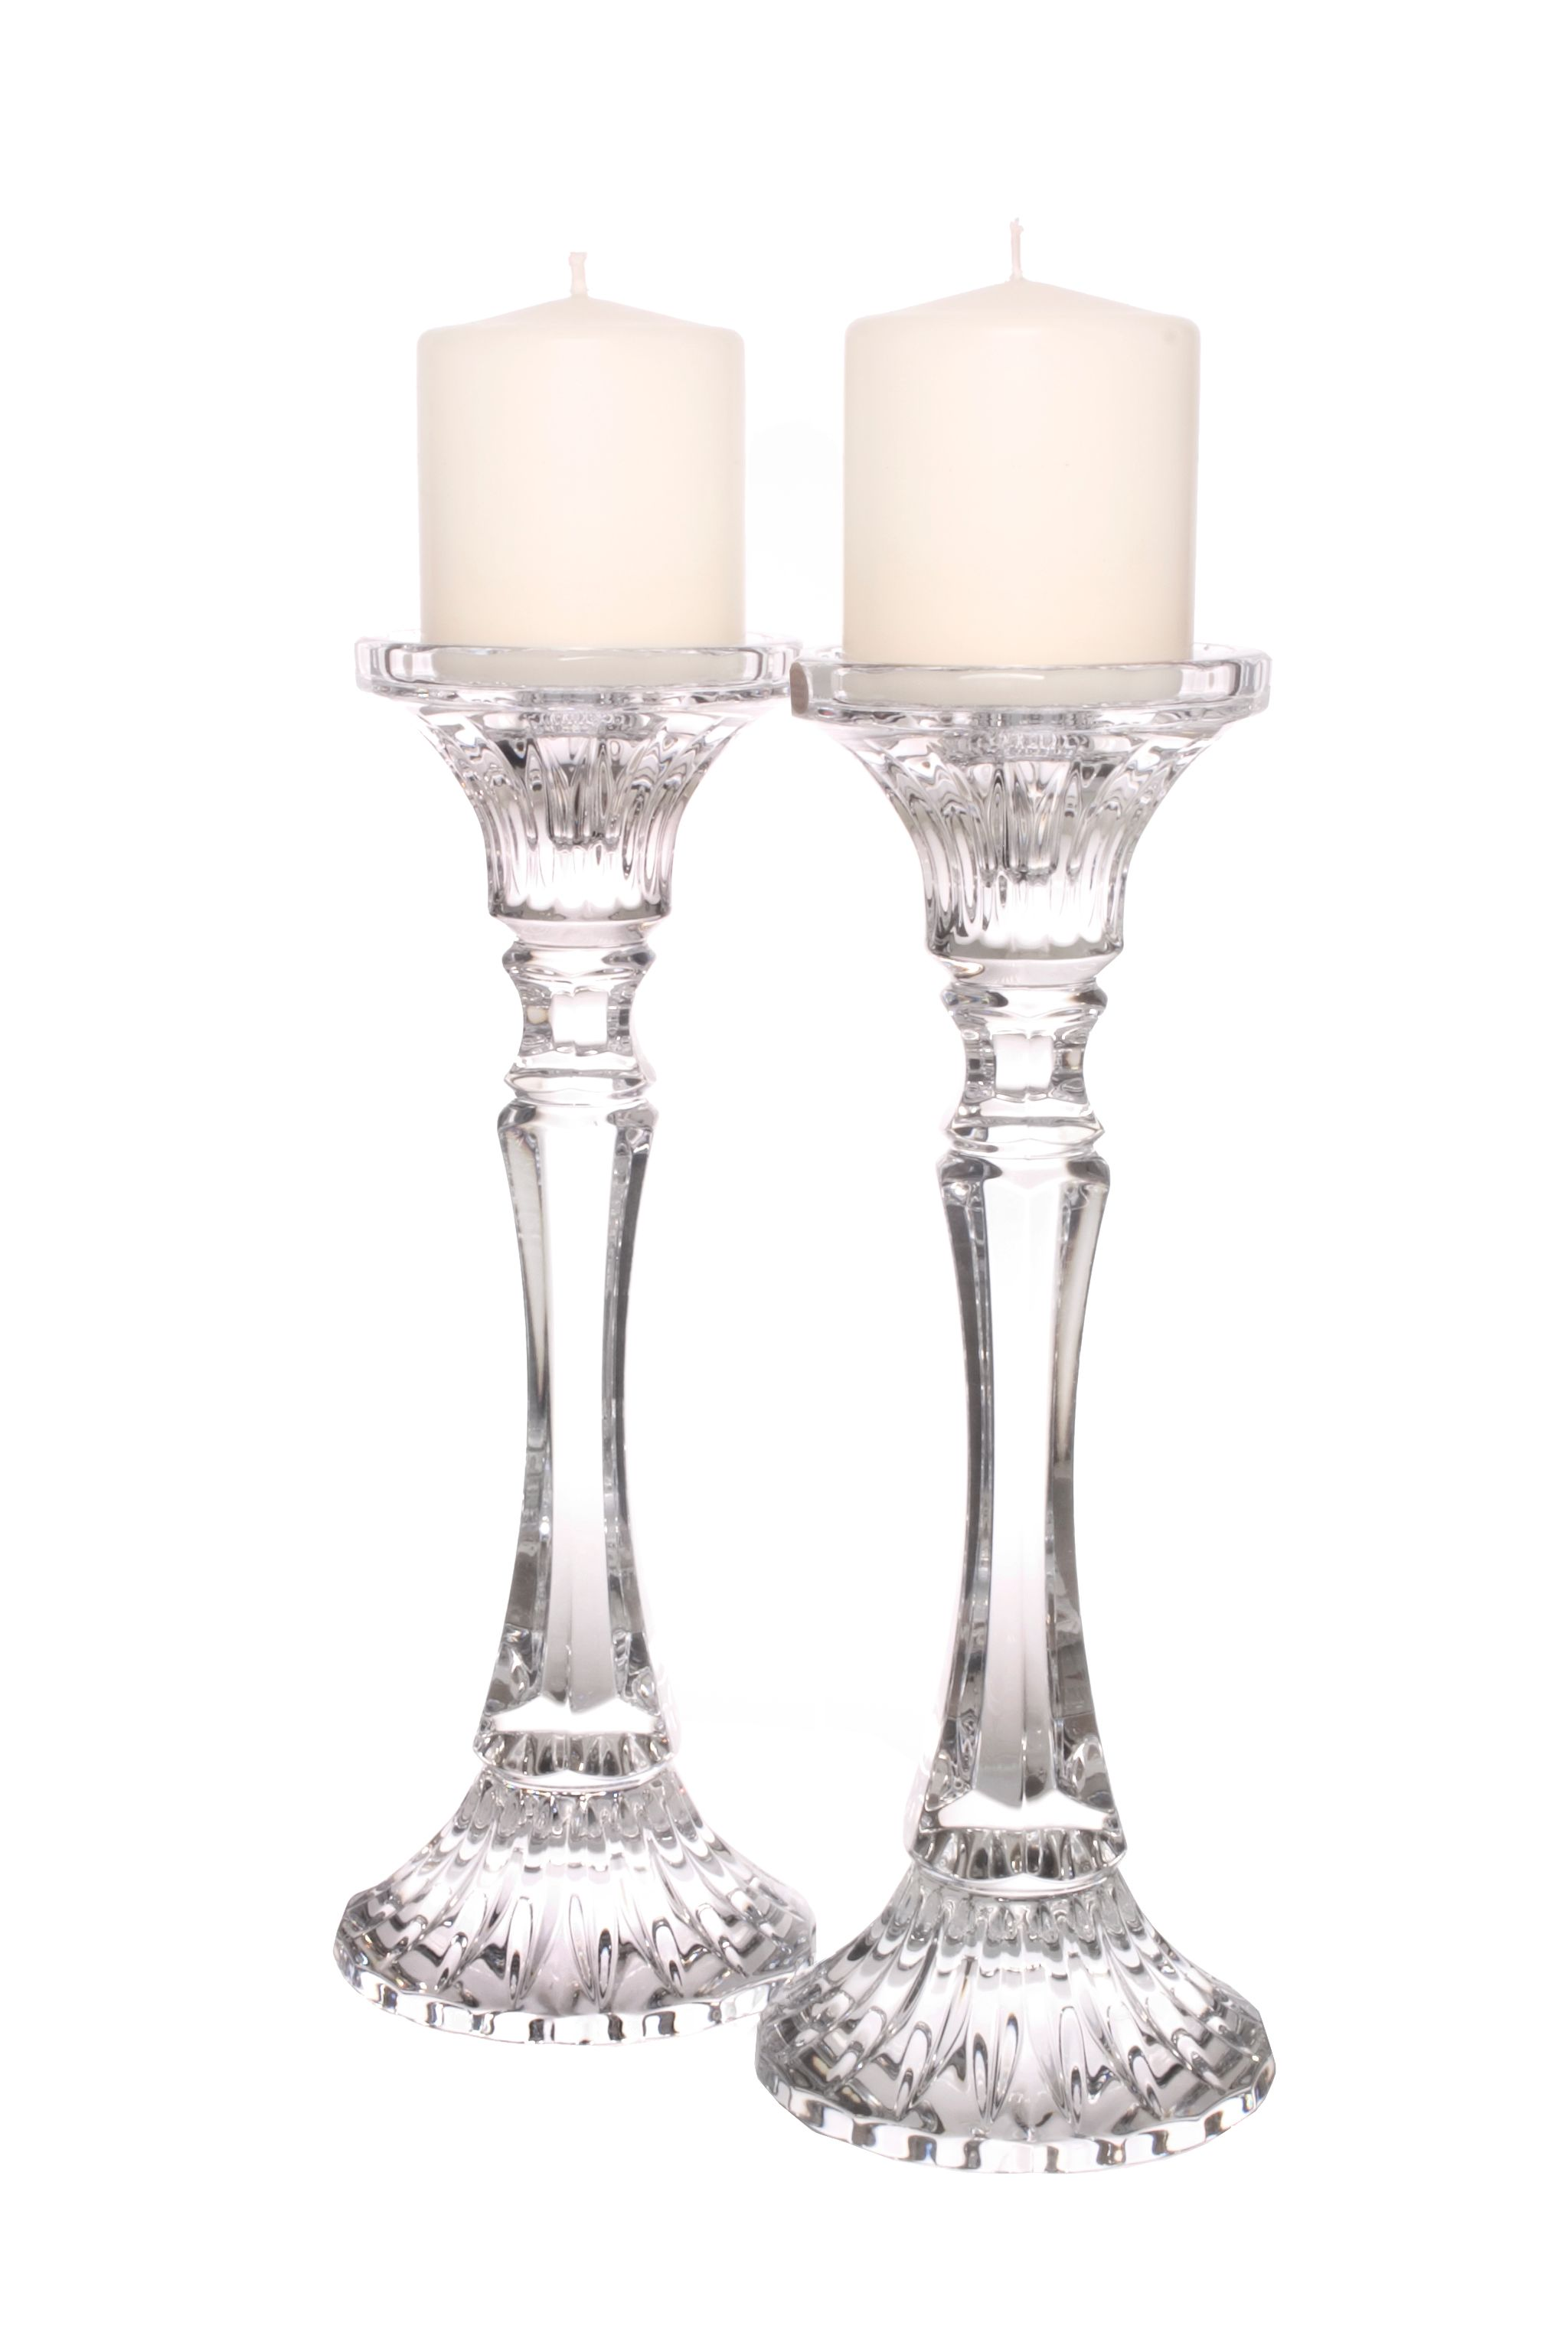 Pillar candle gift set